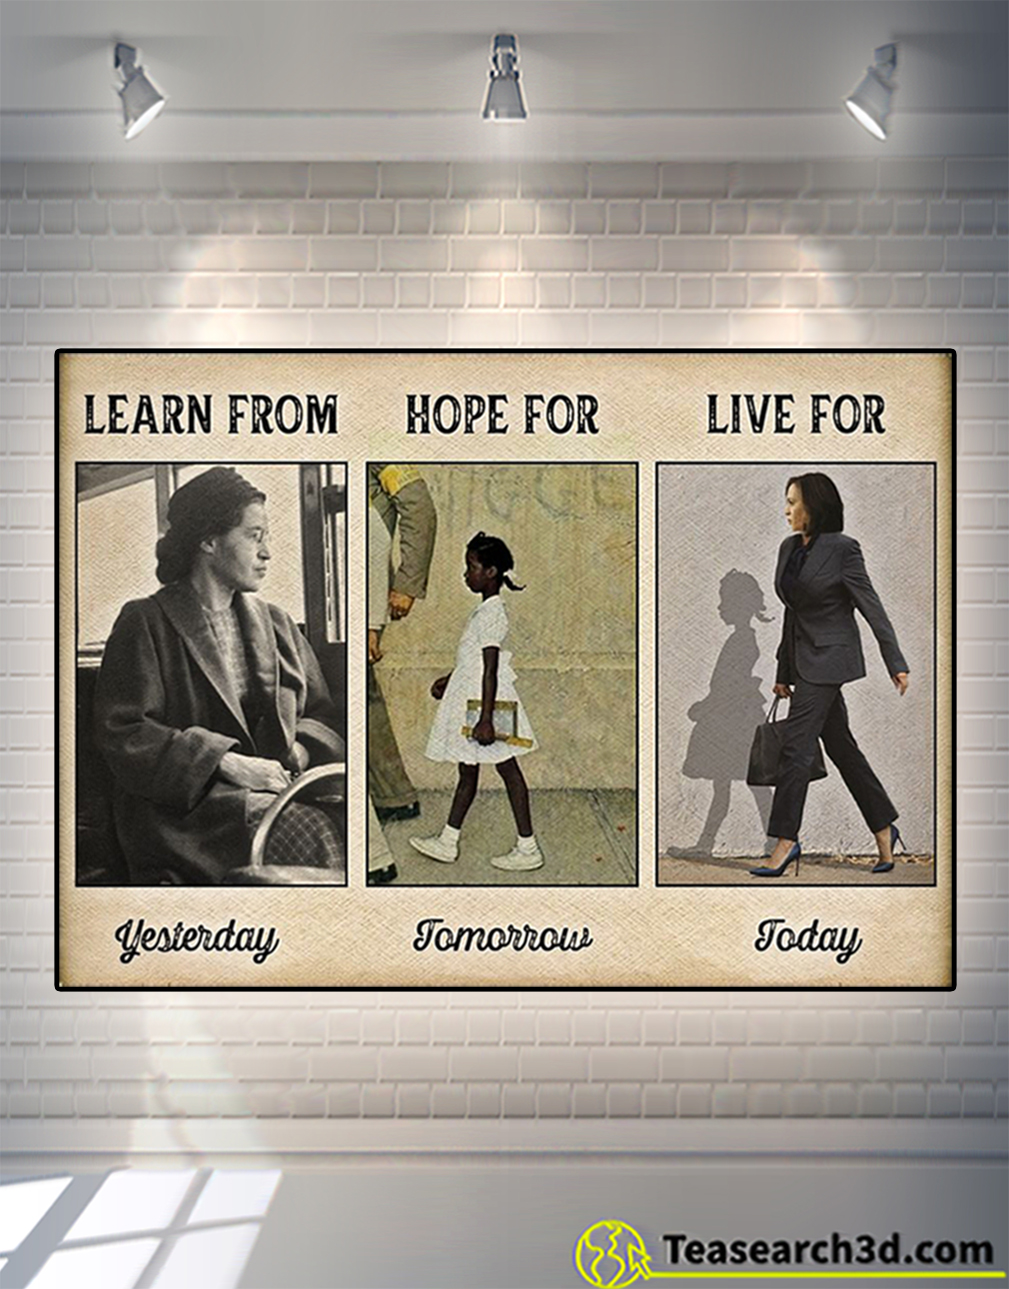 Learn from yesterday hope for tomorrow live for today poster